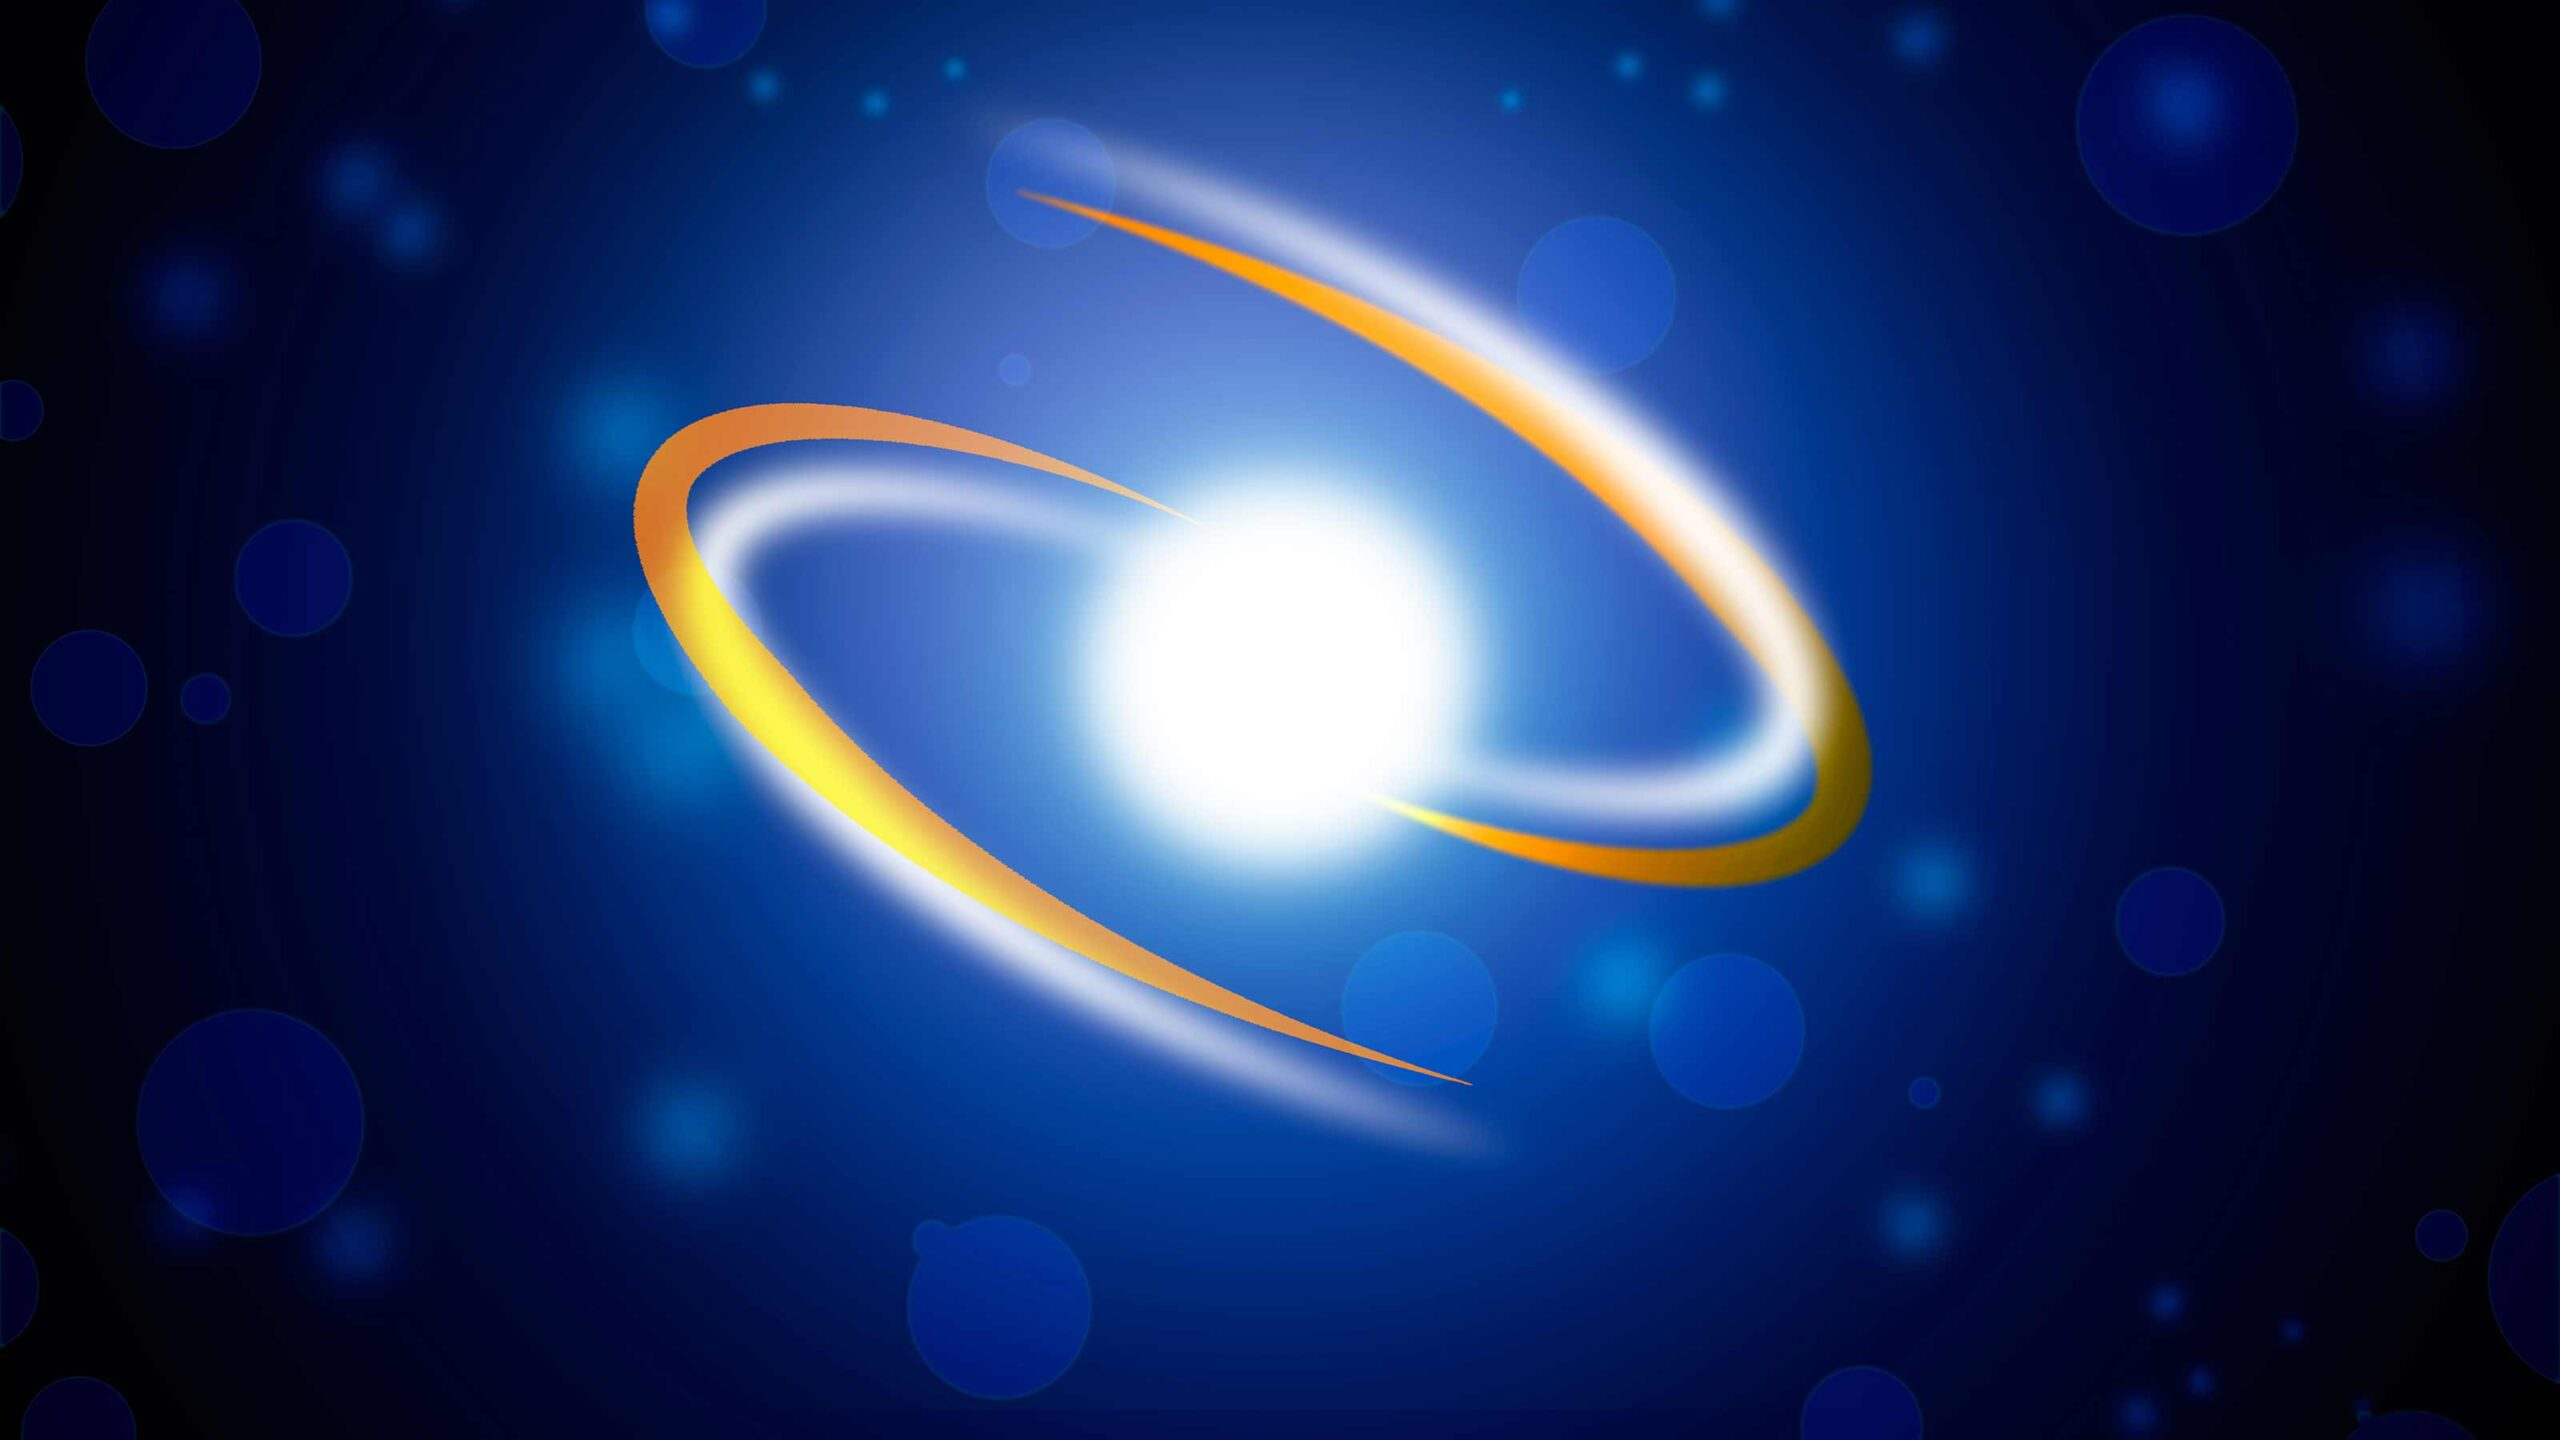 Gold electron swirling on top of a blue background.